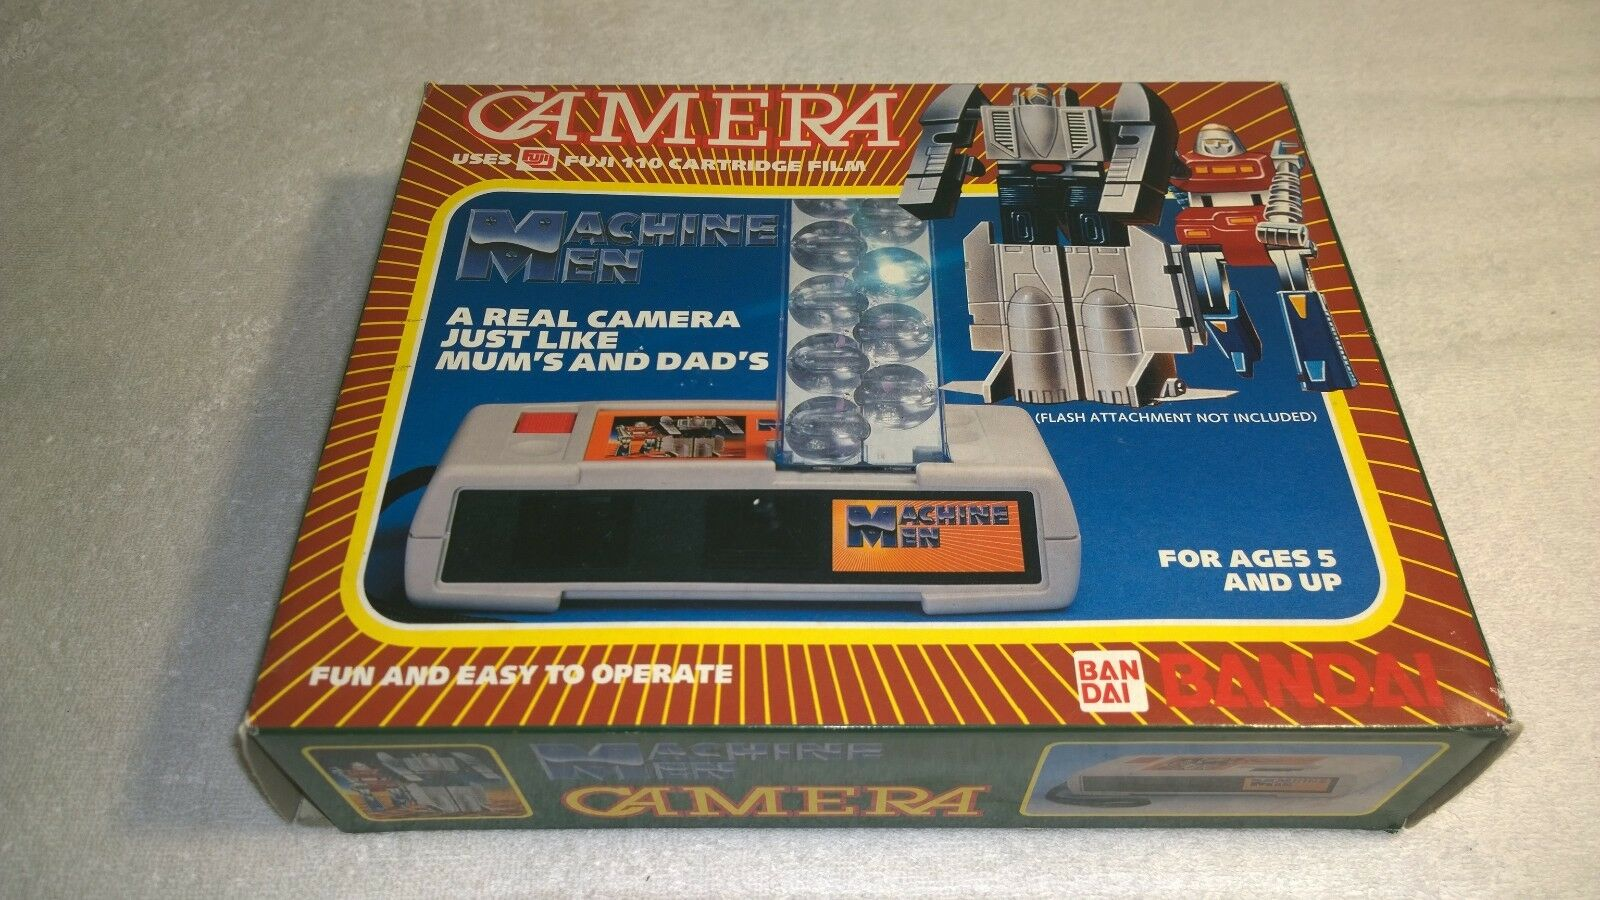 Rara retro 1984 robots GoBot Caja Honey mayx Award Camara